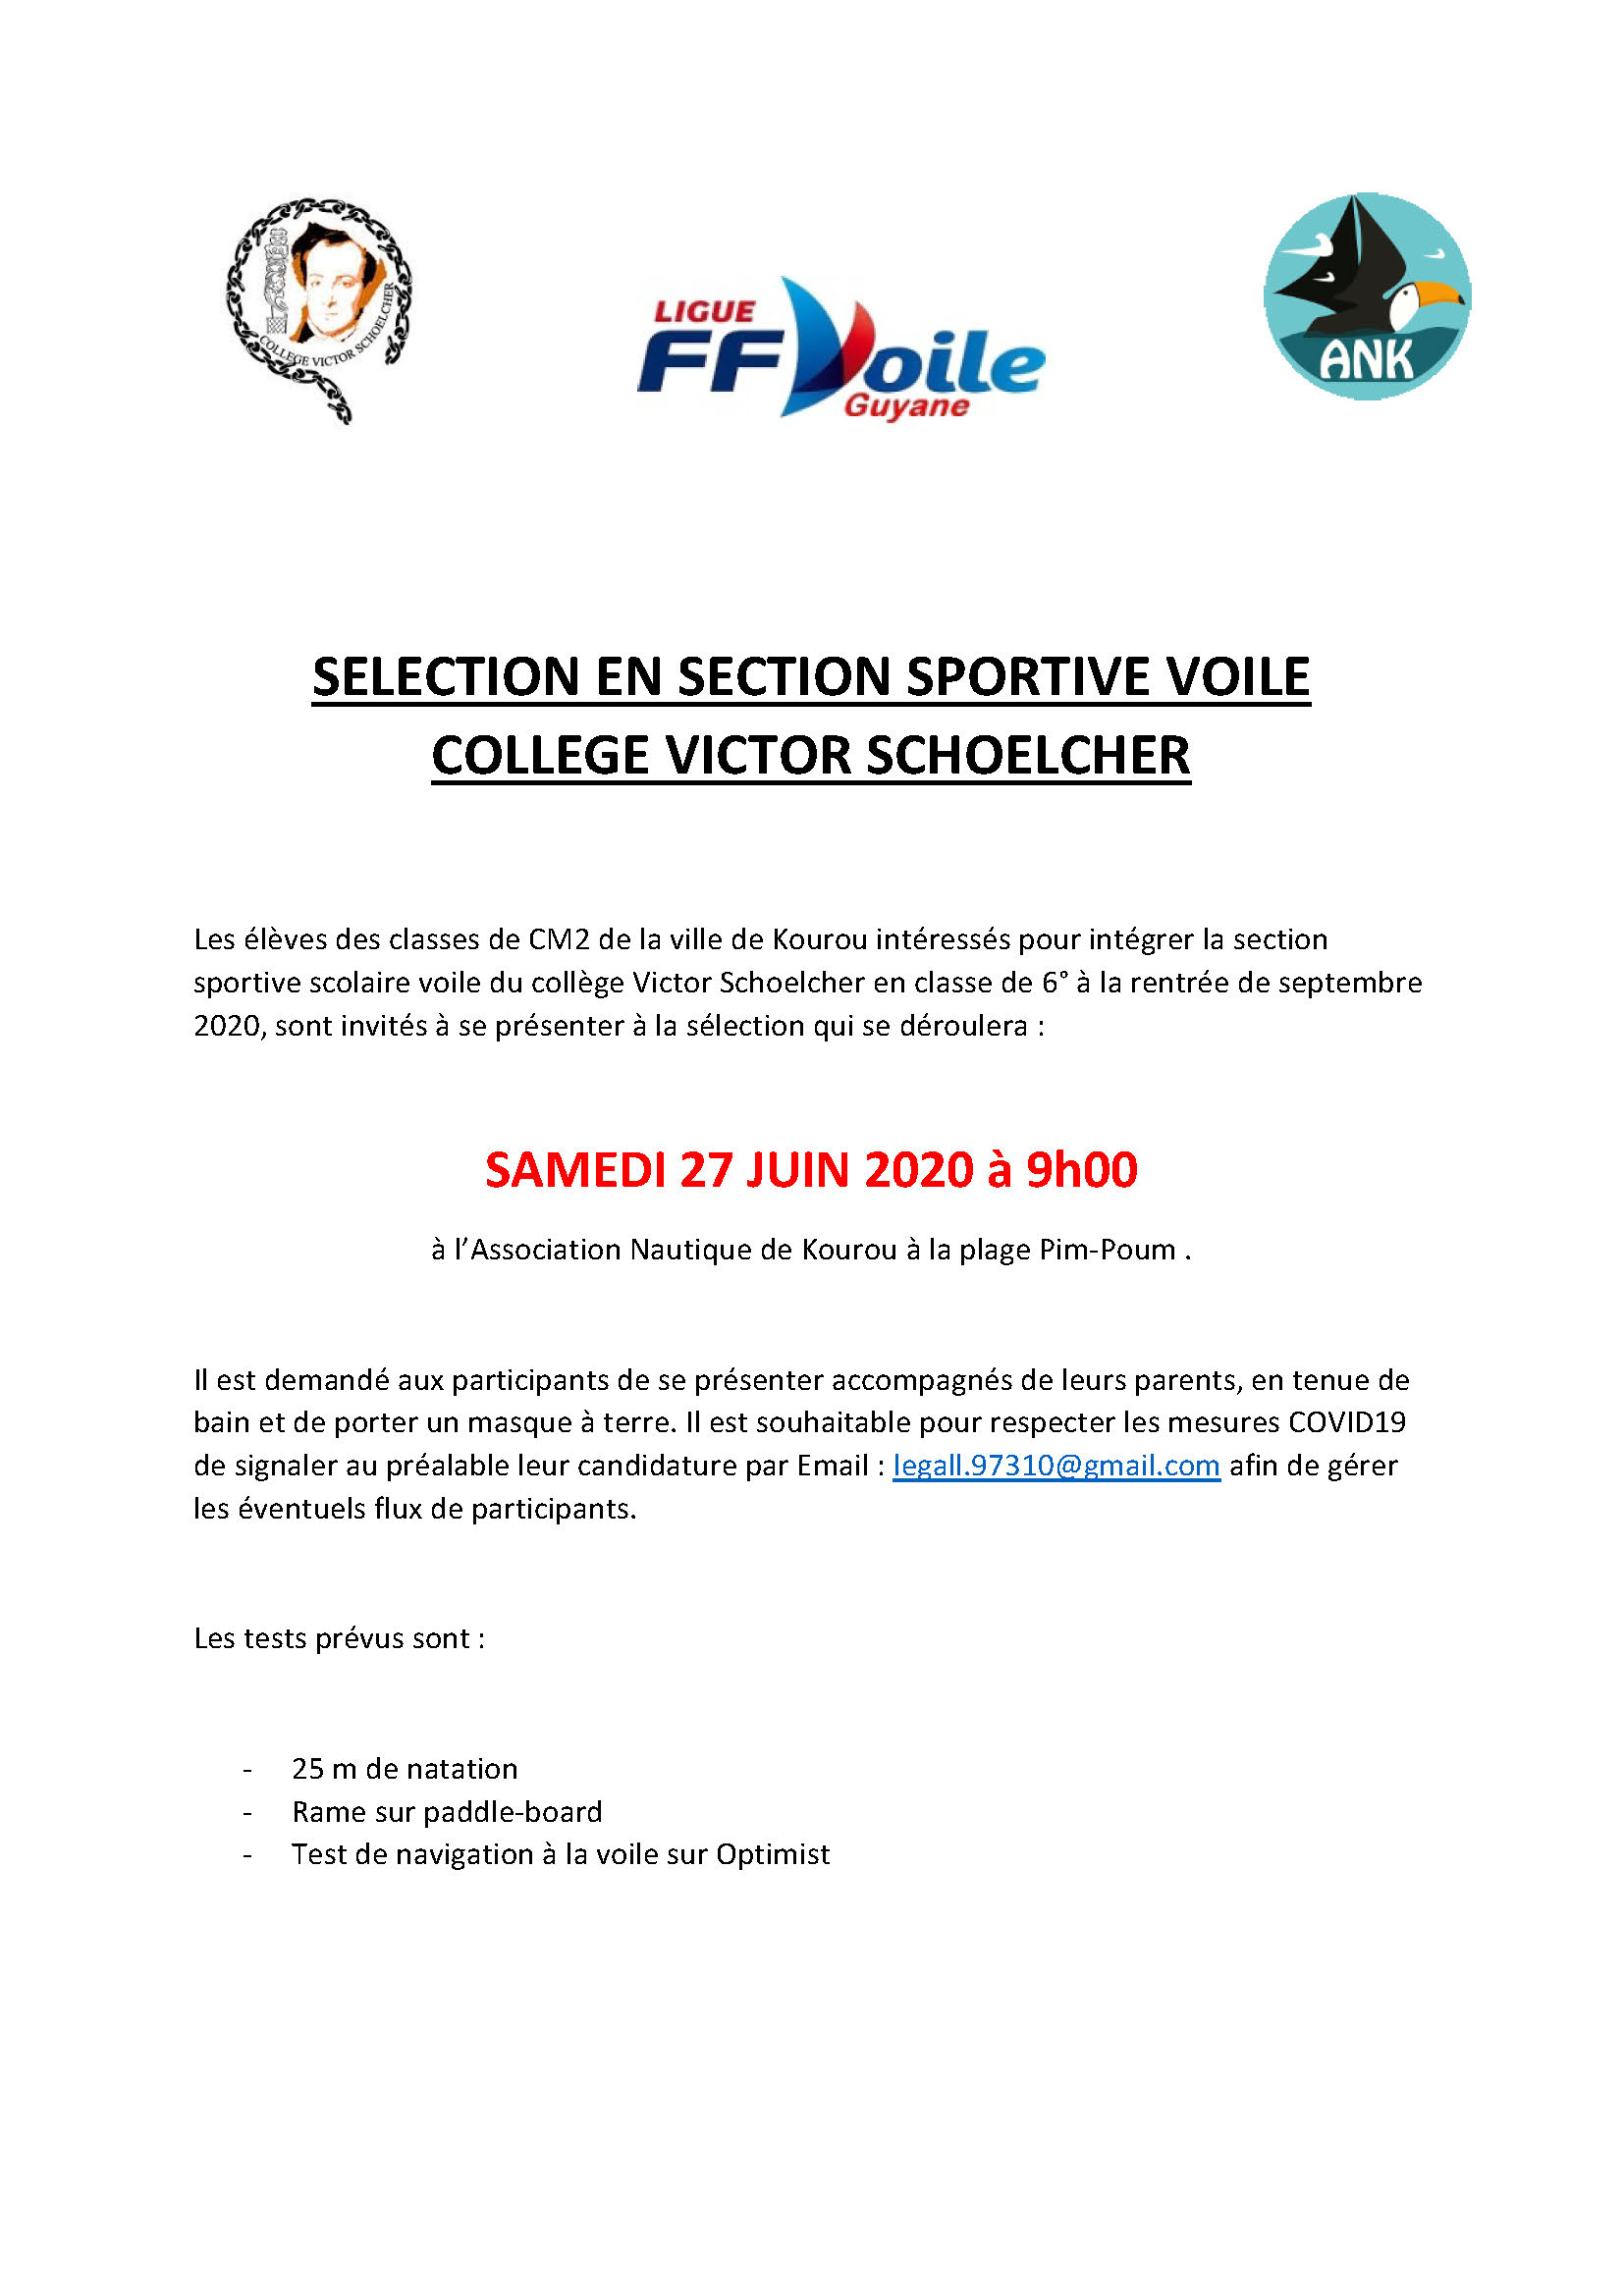 SELECTION EN SECTION SPORTIVE VOILE COLLEGE VICTOR SCHOELCHER 2021 1